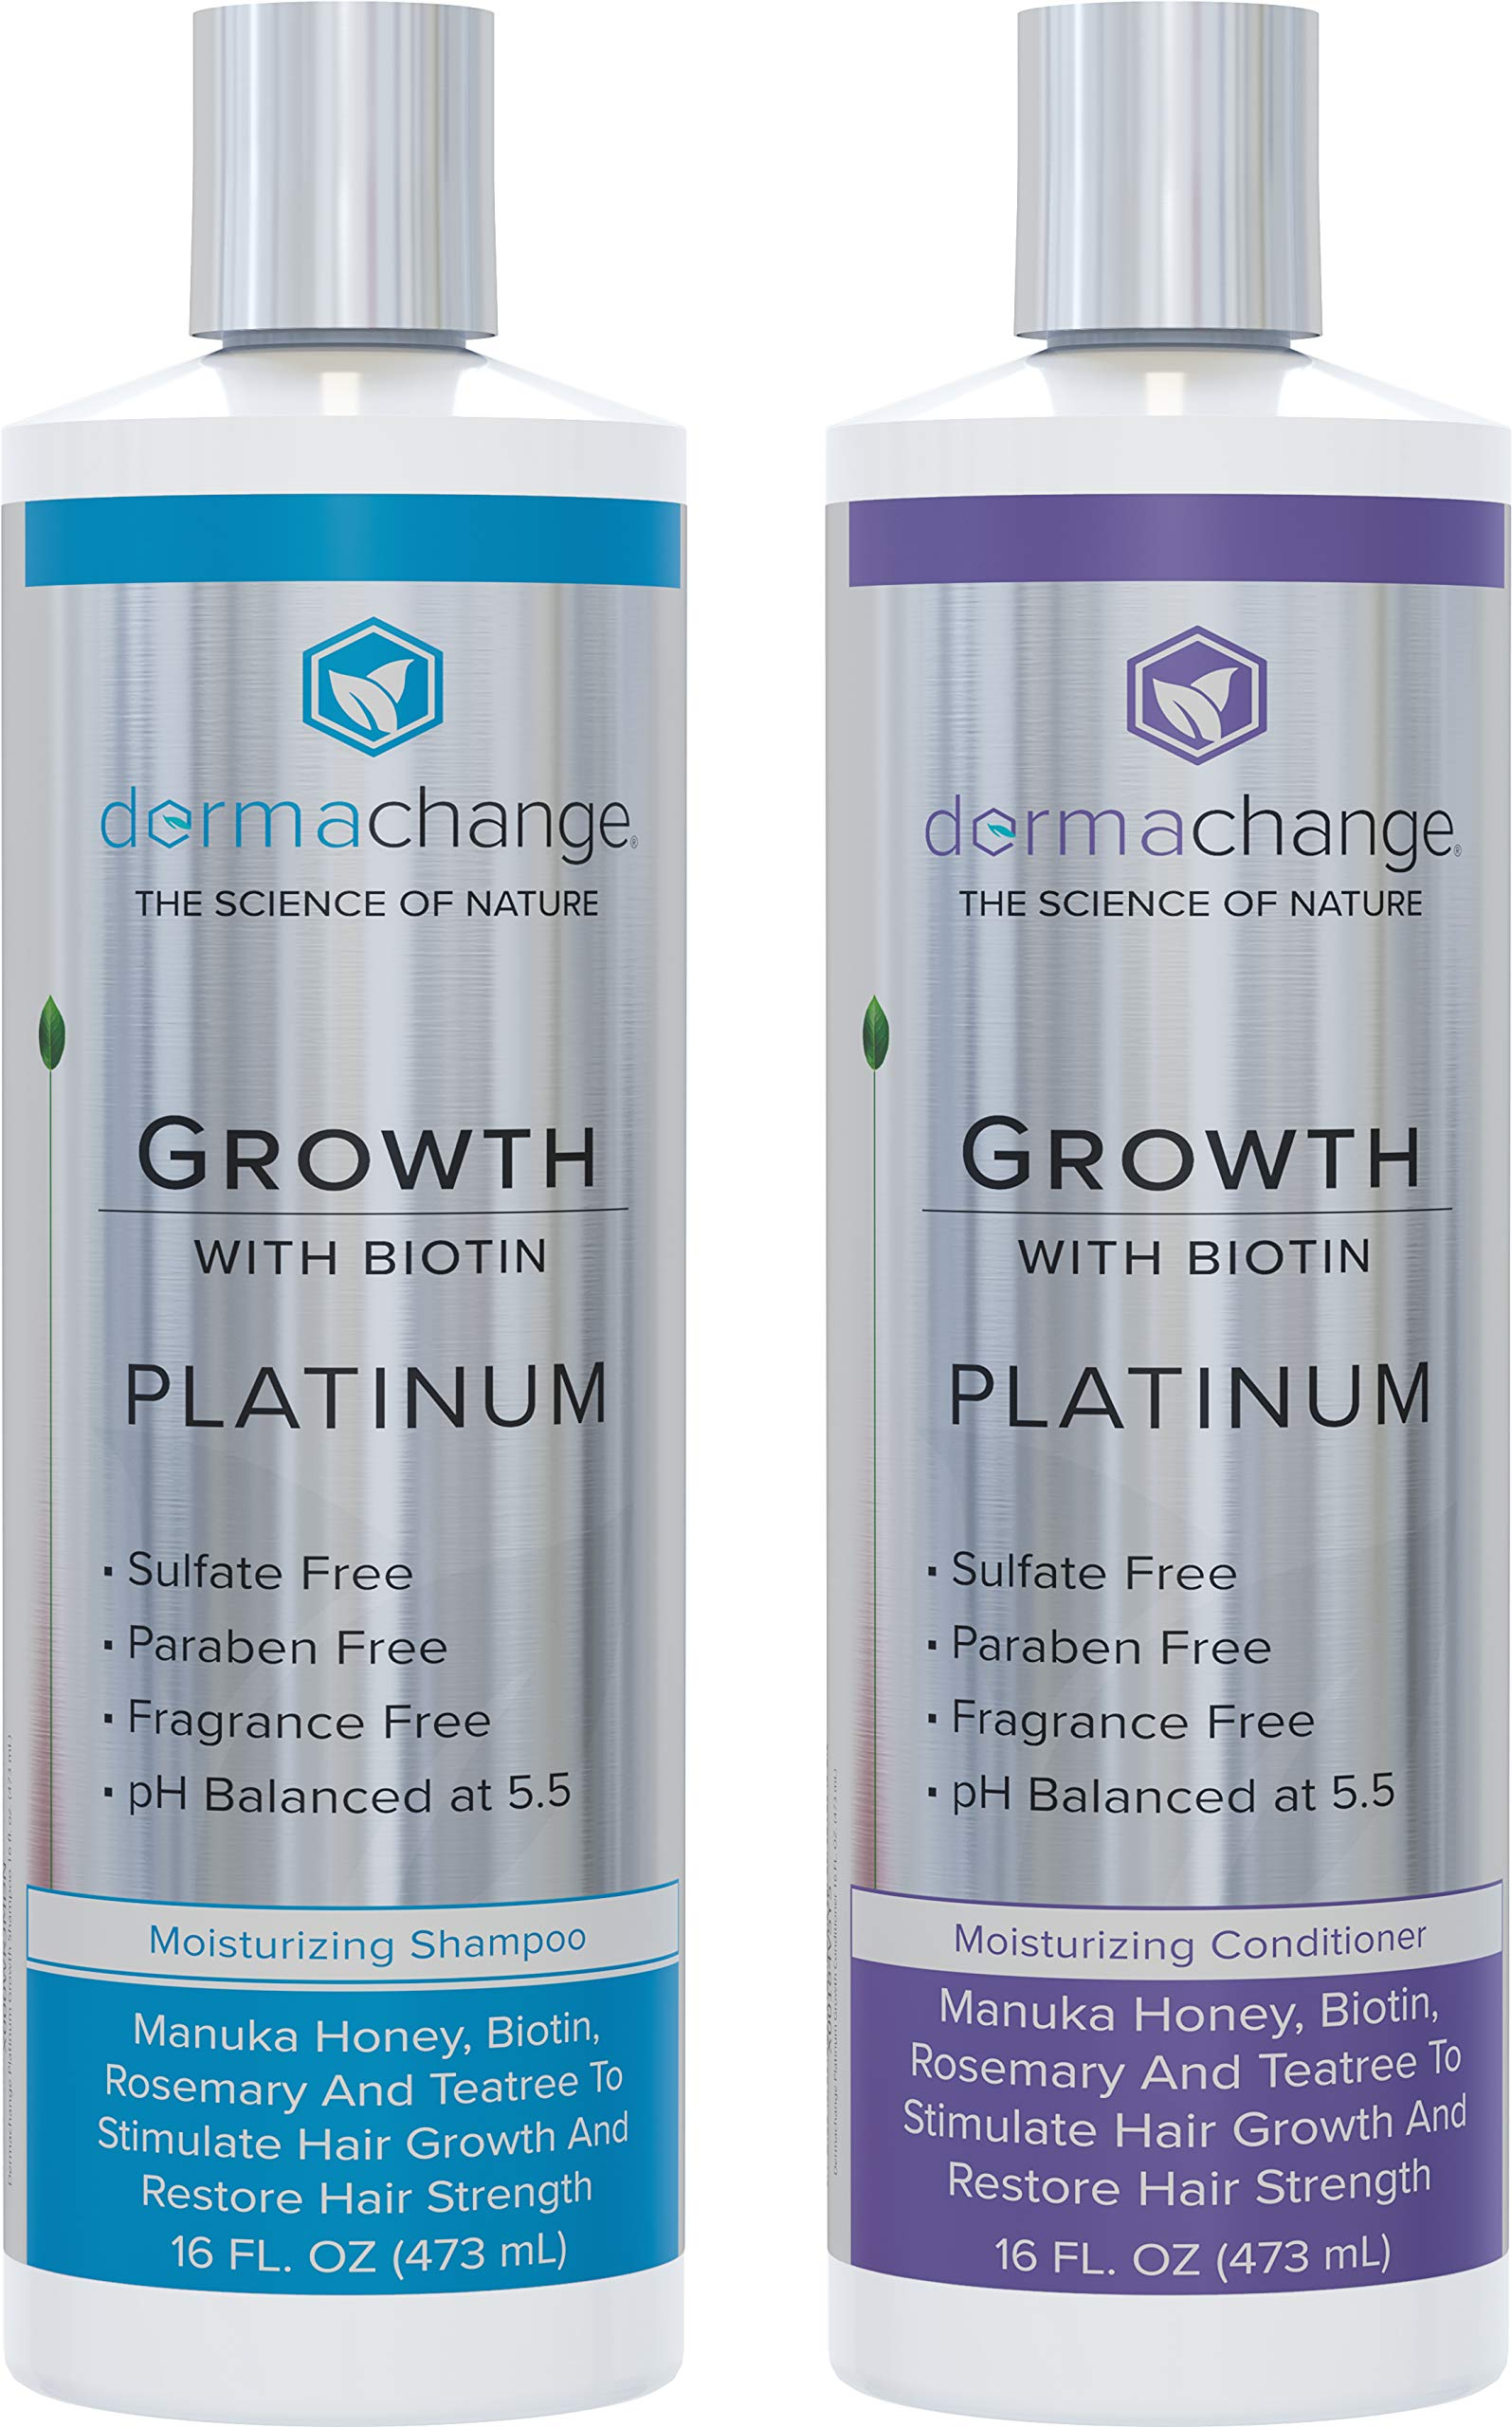 Hair Growth Organic Shampoo and Conditioner Set - With Biotin and Argan Oil - Supports Regrowth and Prevents Hair Loss - Dry Damaged and Color-Treated Hair - Sulfate and Paraben Free (16oz) by DermaChange